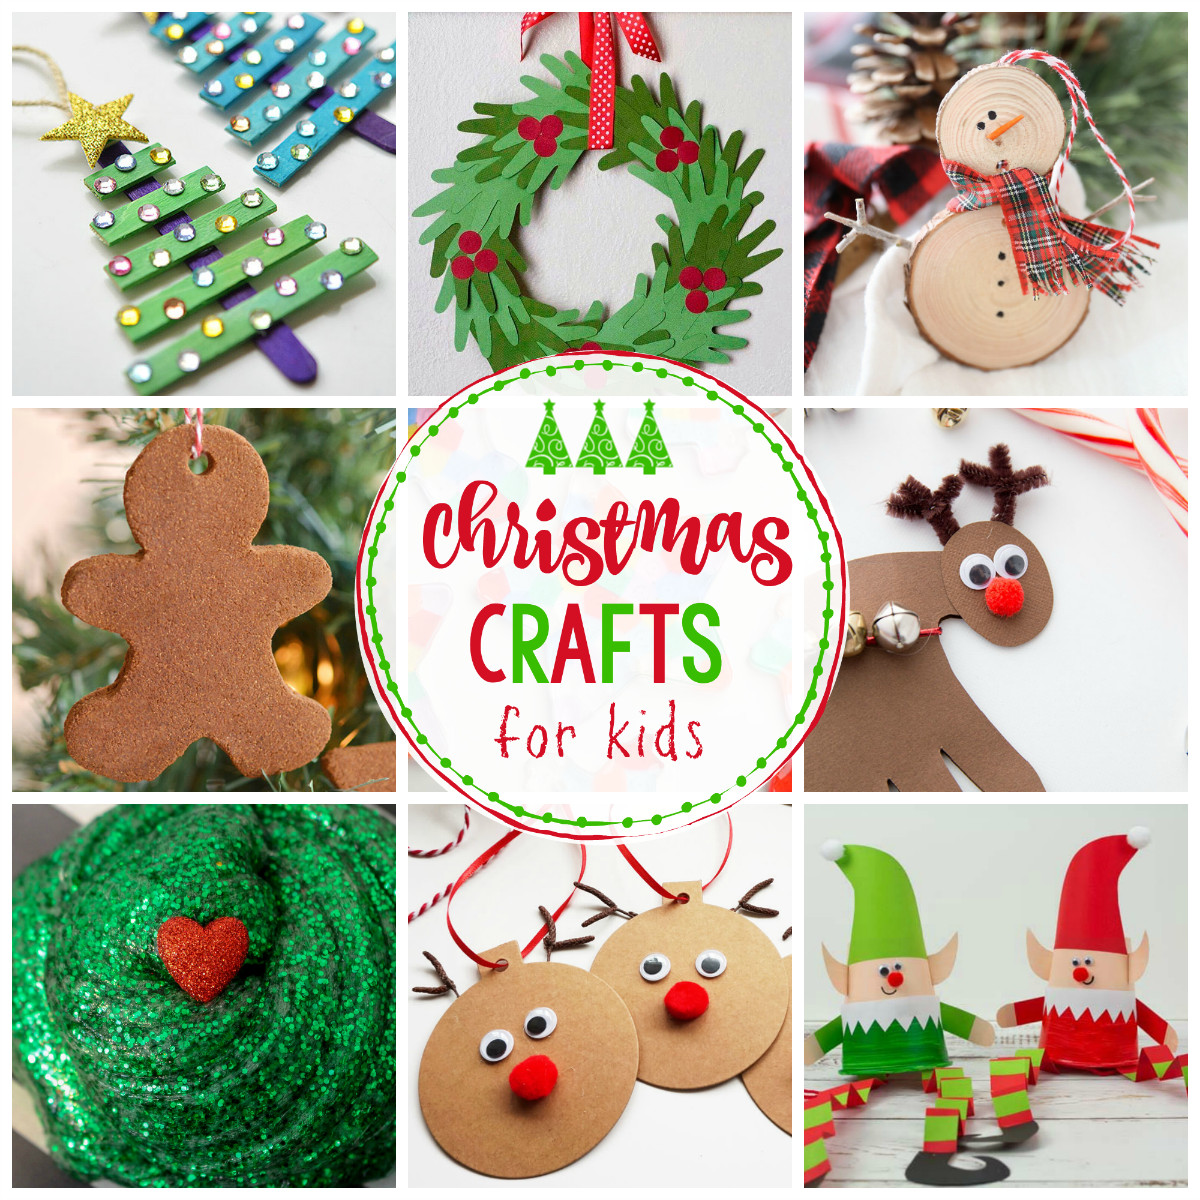 Christmas Arts And Craft Ideas For Toddlers  25 Easy Christmas Crafts for Kids Crazy Little Projects